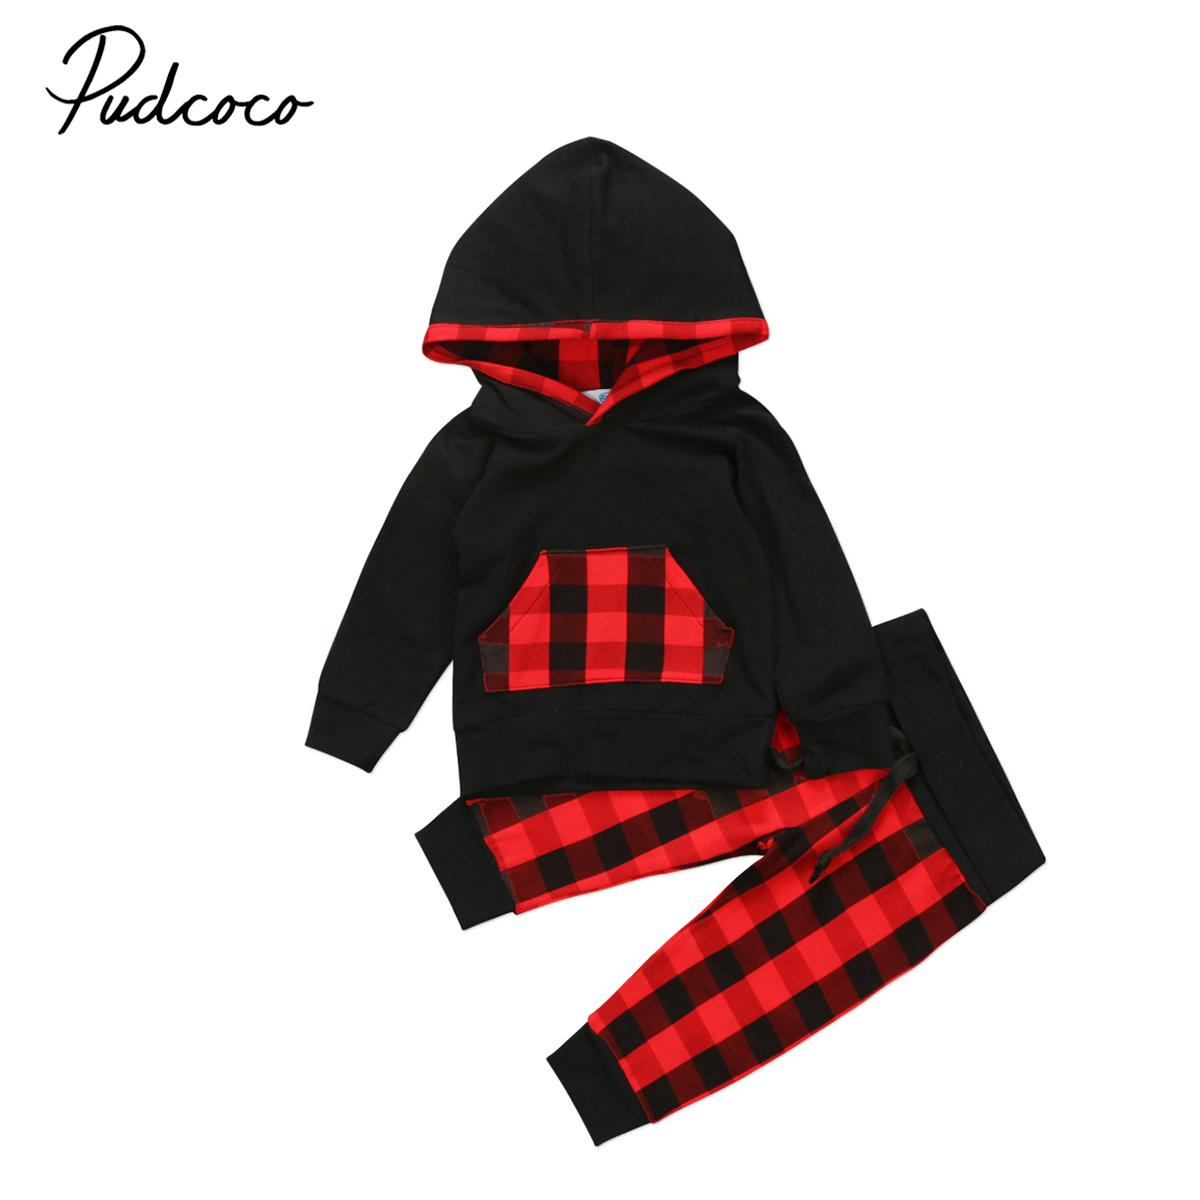 c99bfce76 2019 2017 Christmas Newborn Infant Baby Girl Boy Clothes Hoodies Tops T  Shirt Long Pants Outfits Set Toddler Red Black Plaid Clothing From  Cover3129, ...